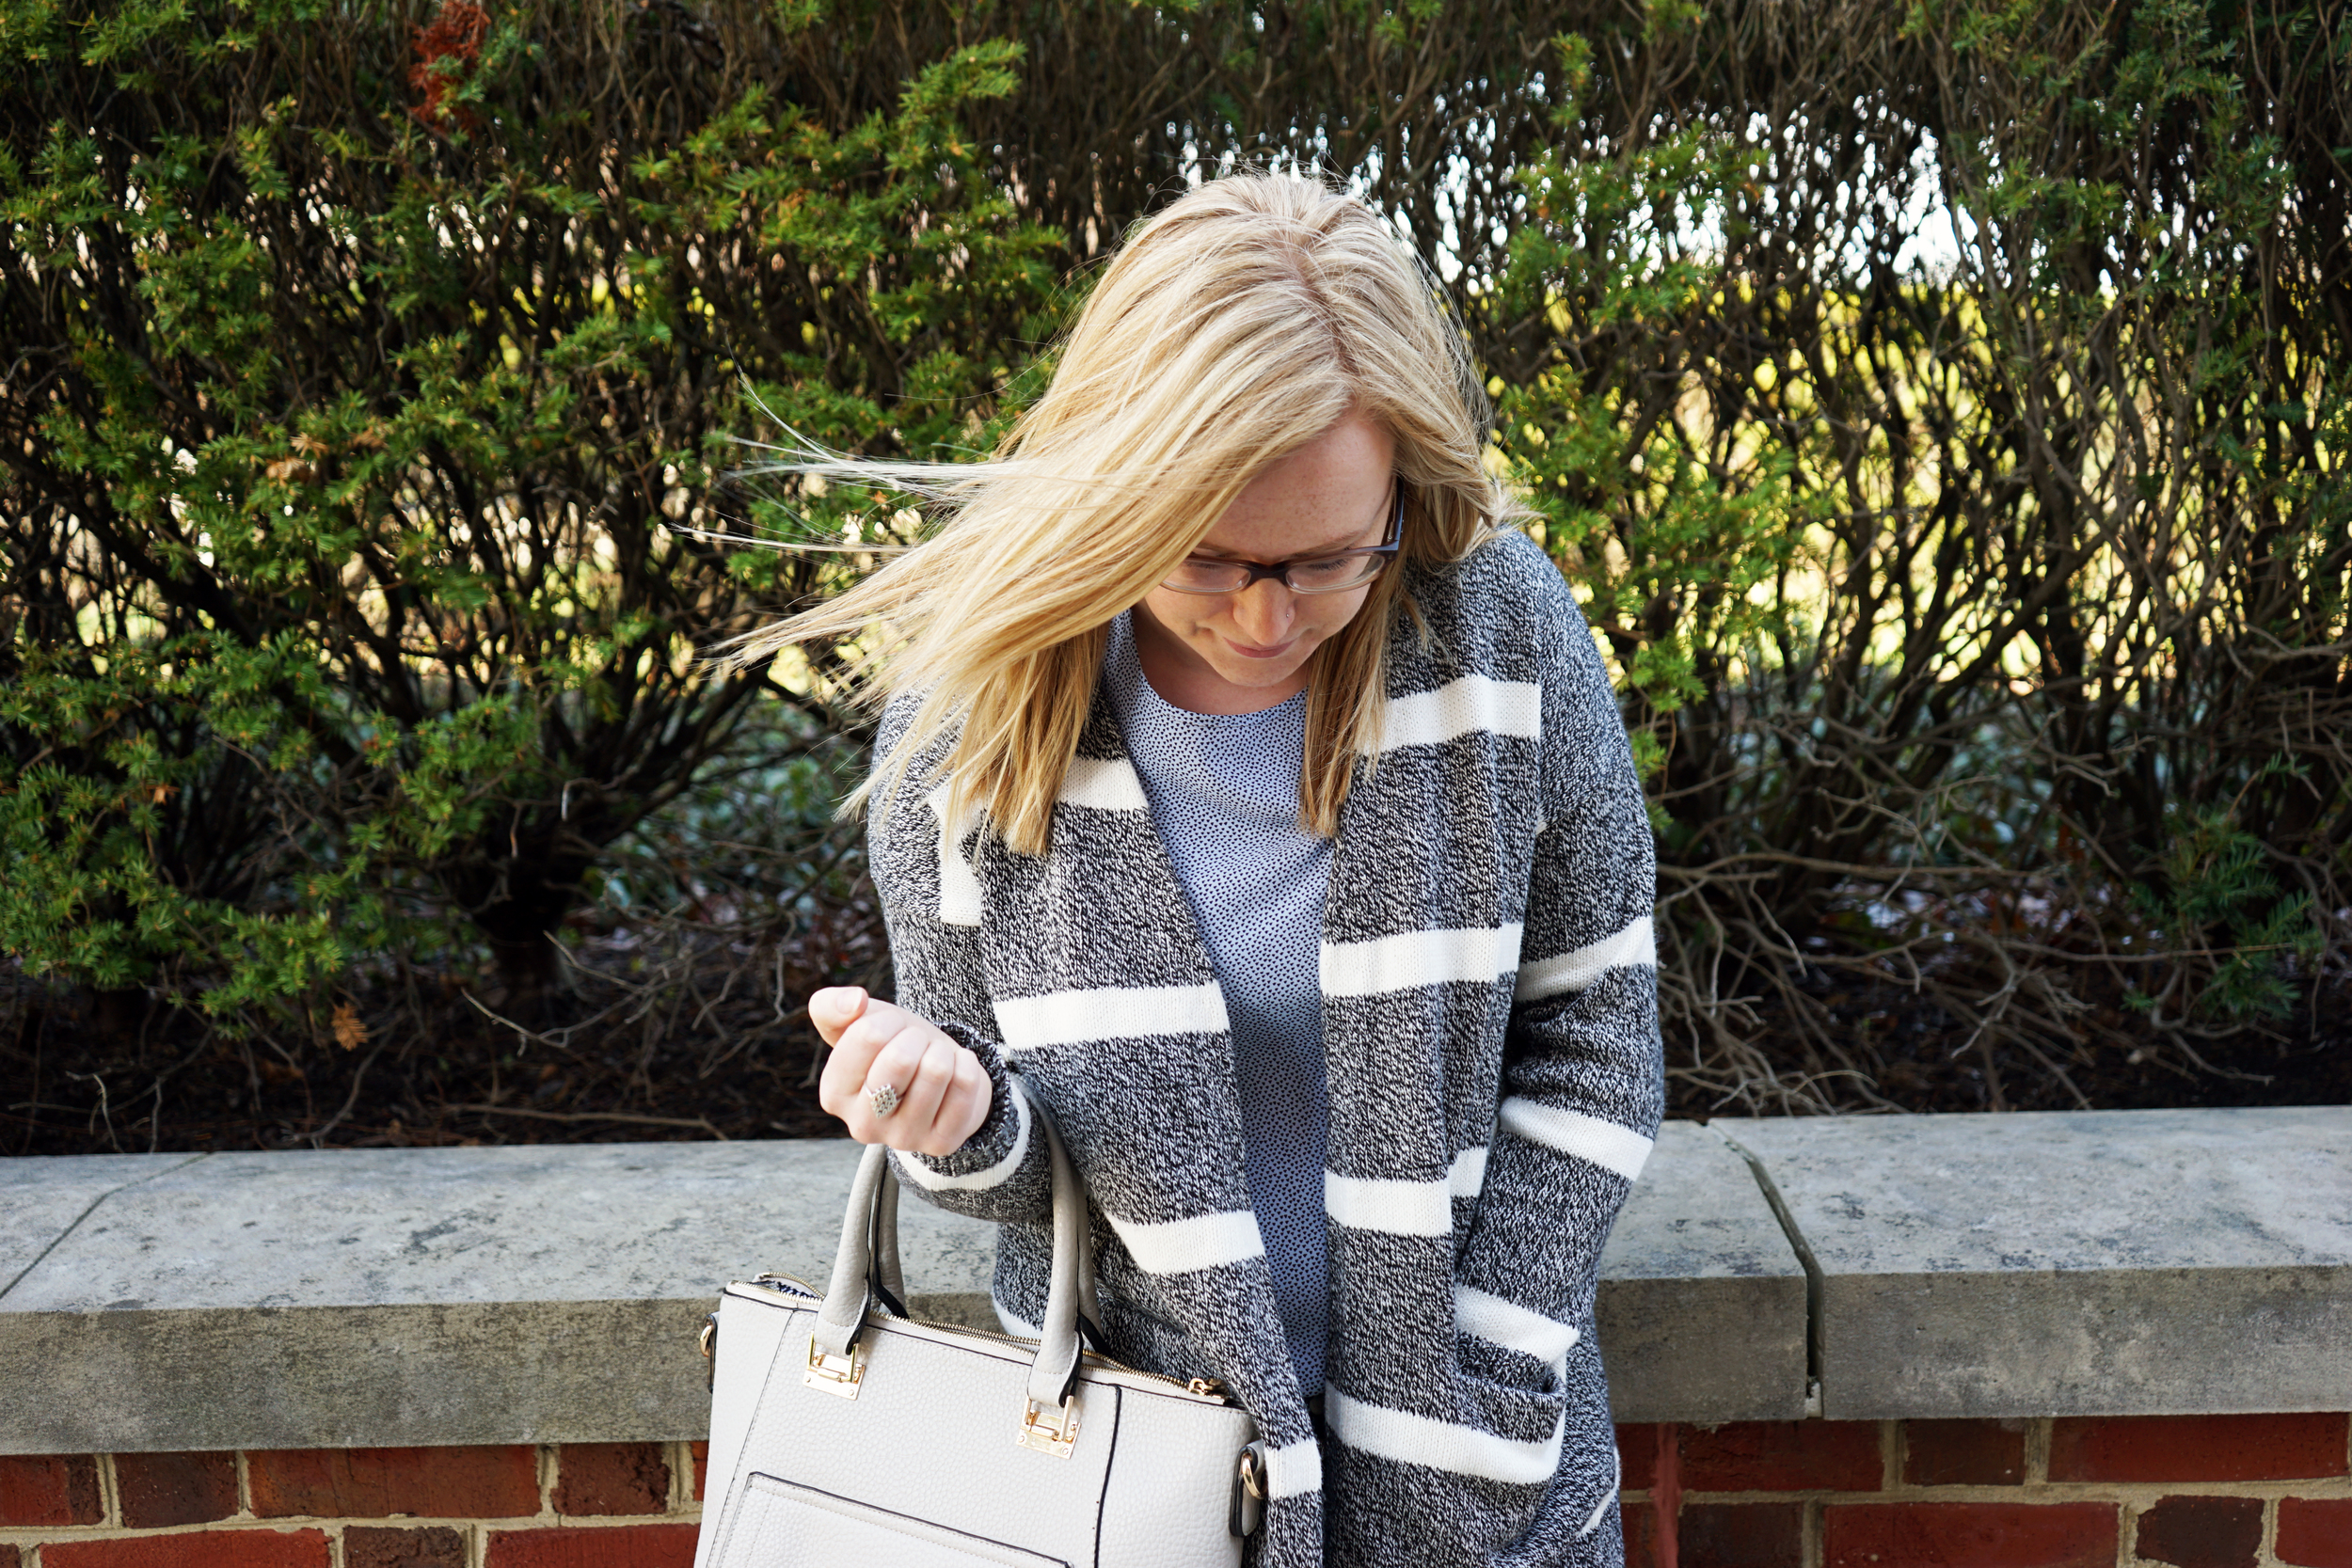 Madewell Striped open cardigan sweater, Ann Taylor dotted fluid tee, Mother denim The Pixie skinny jeans, Via Spiga Nalo wedges, Urban Expressions Gia satchel purse - Maggie a la Mode